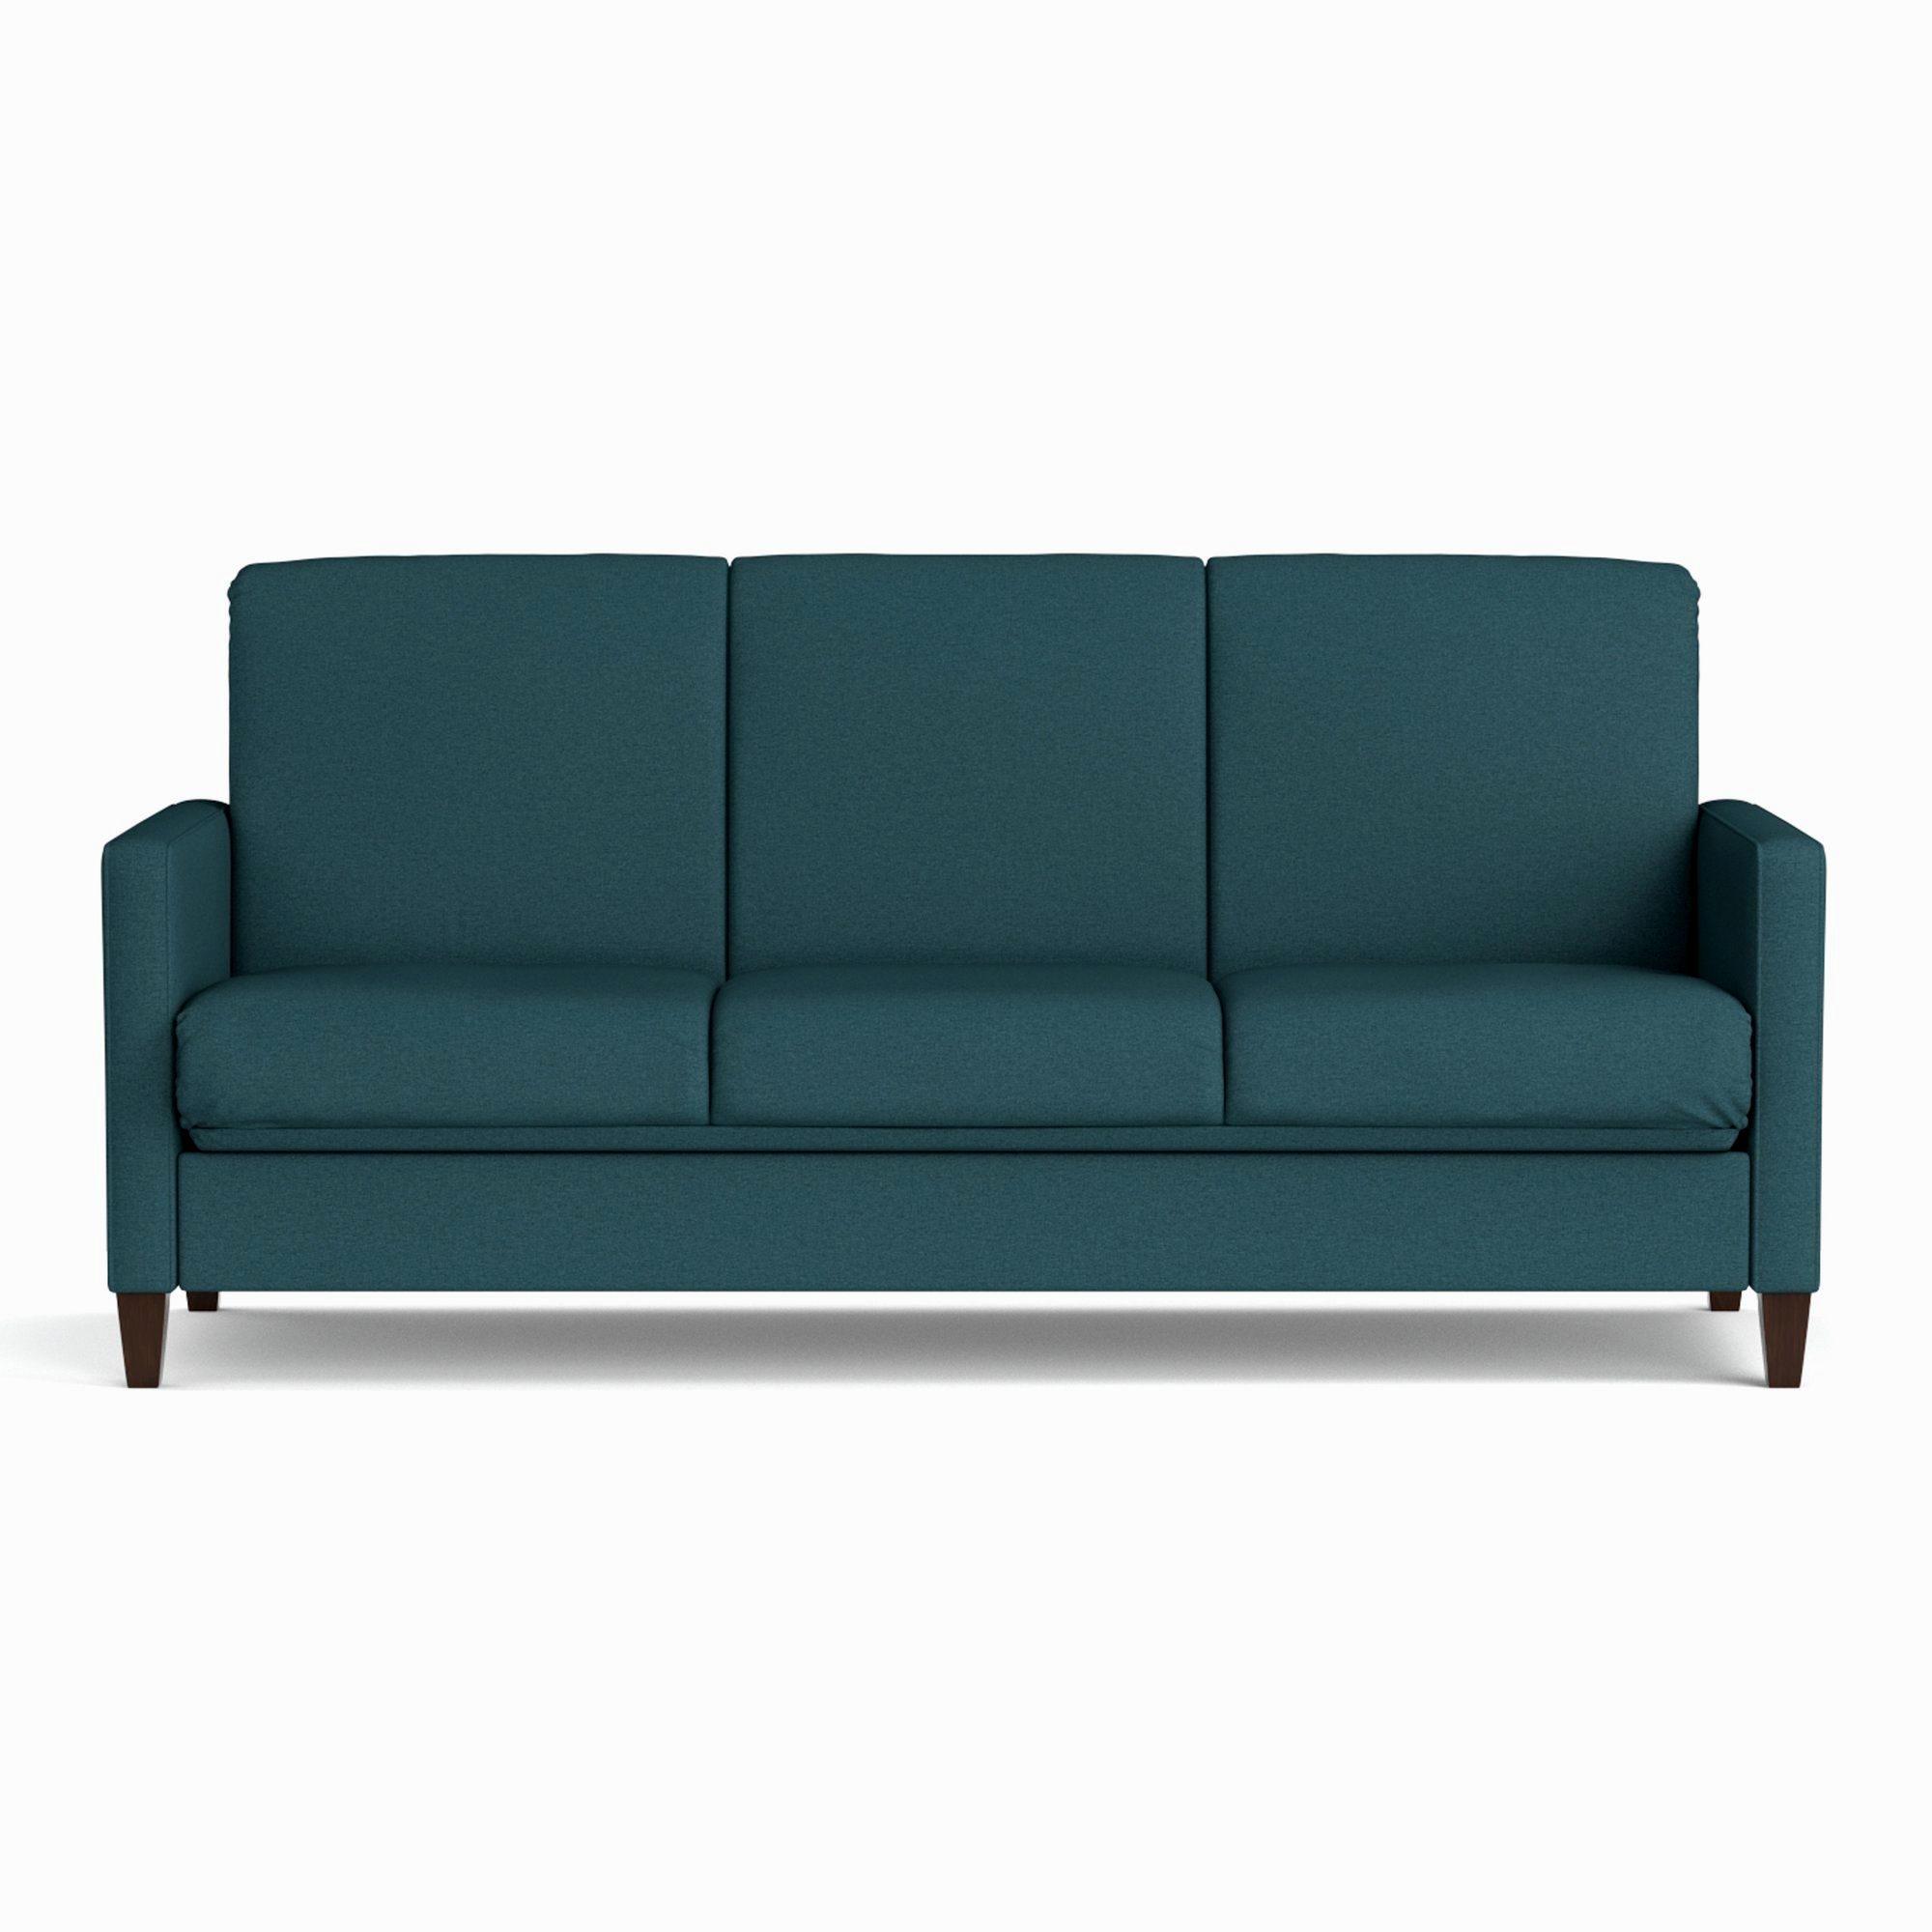 incredible most comfortable sleeper sofa design-Lovely Most Comfortable Sleeper sofa Architecture